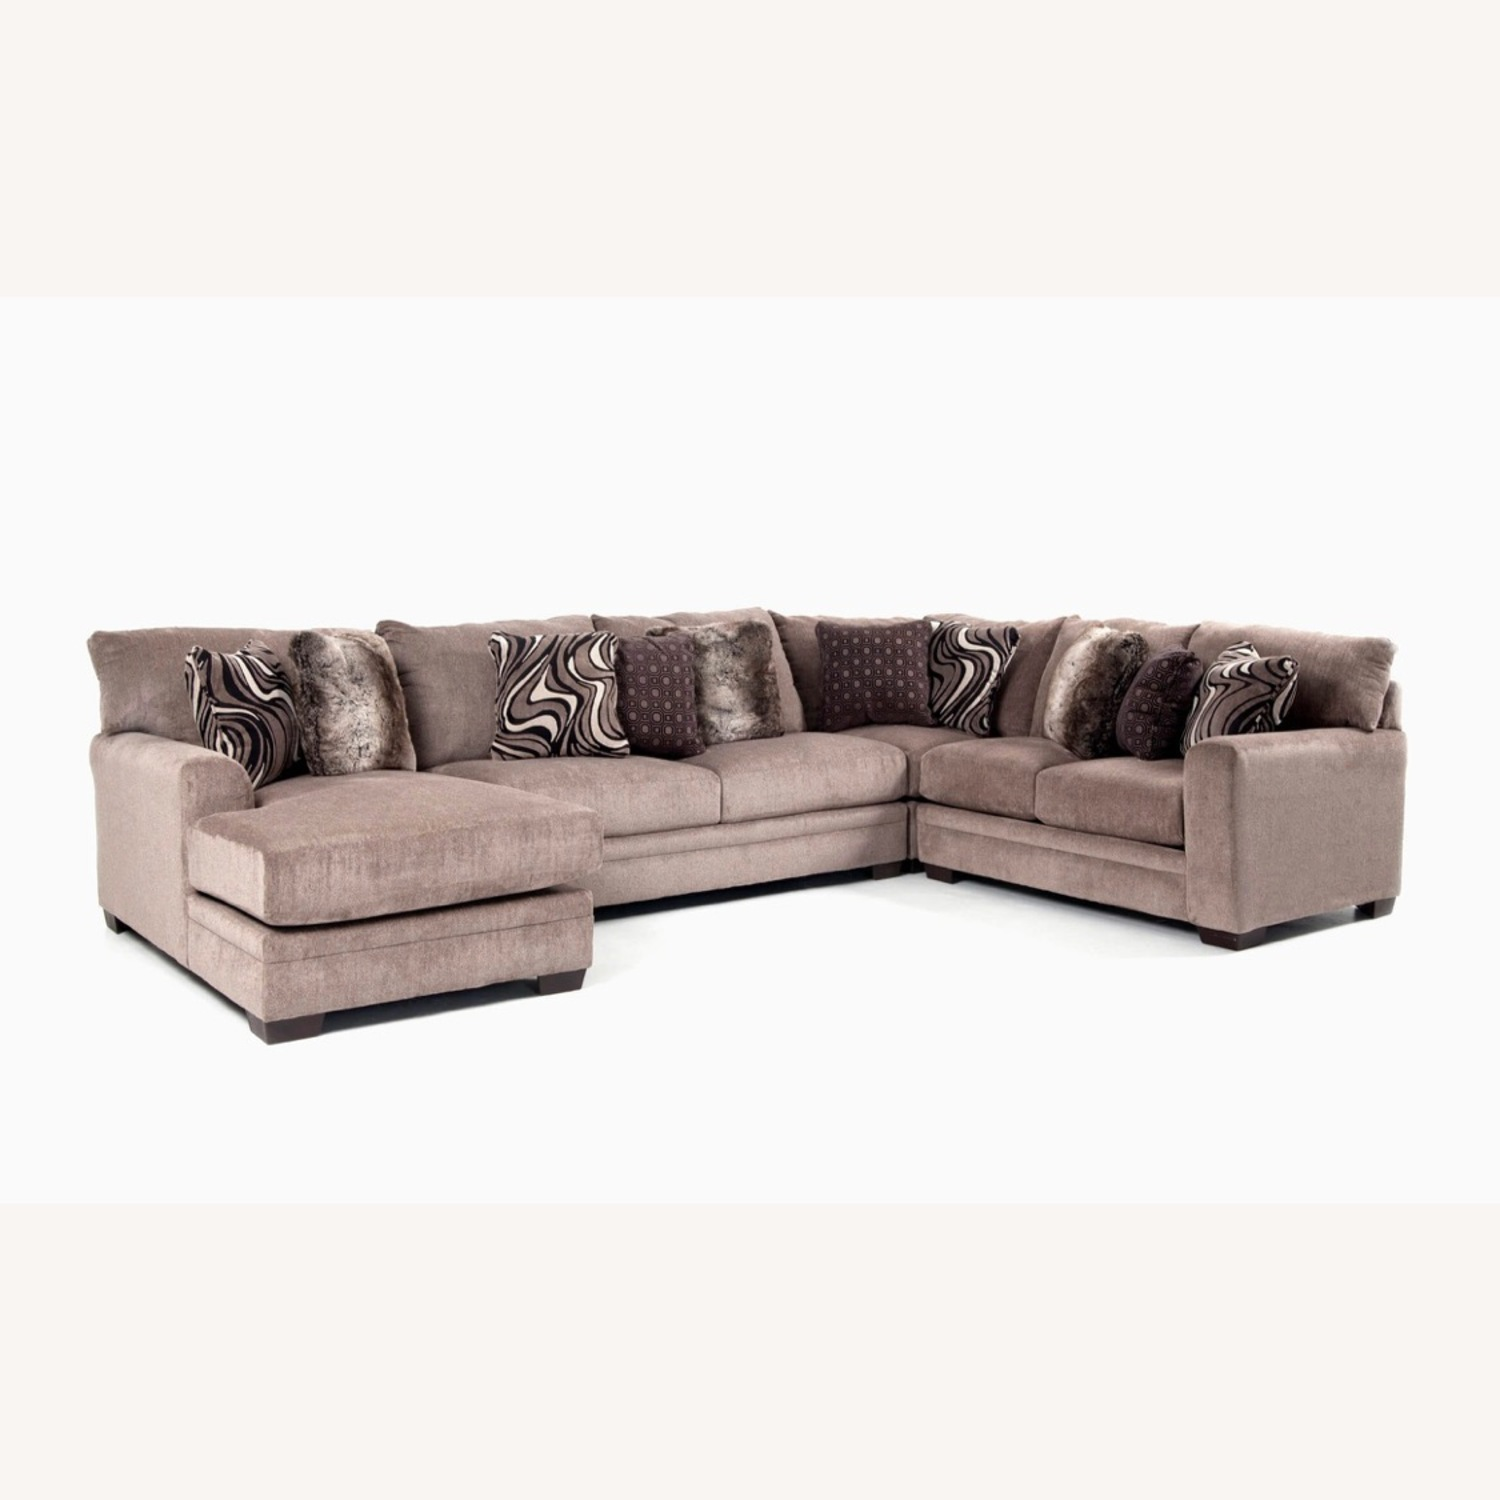 Bob's Discount Furniture Luxe Sectional - image-3